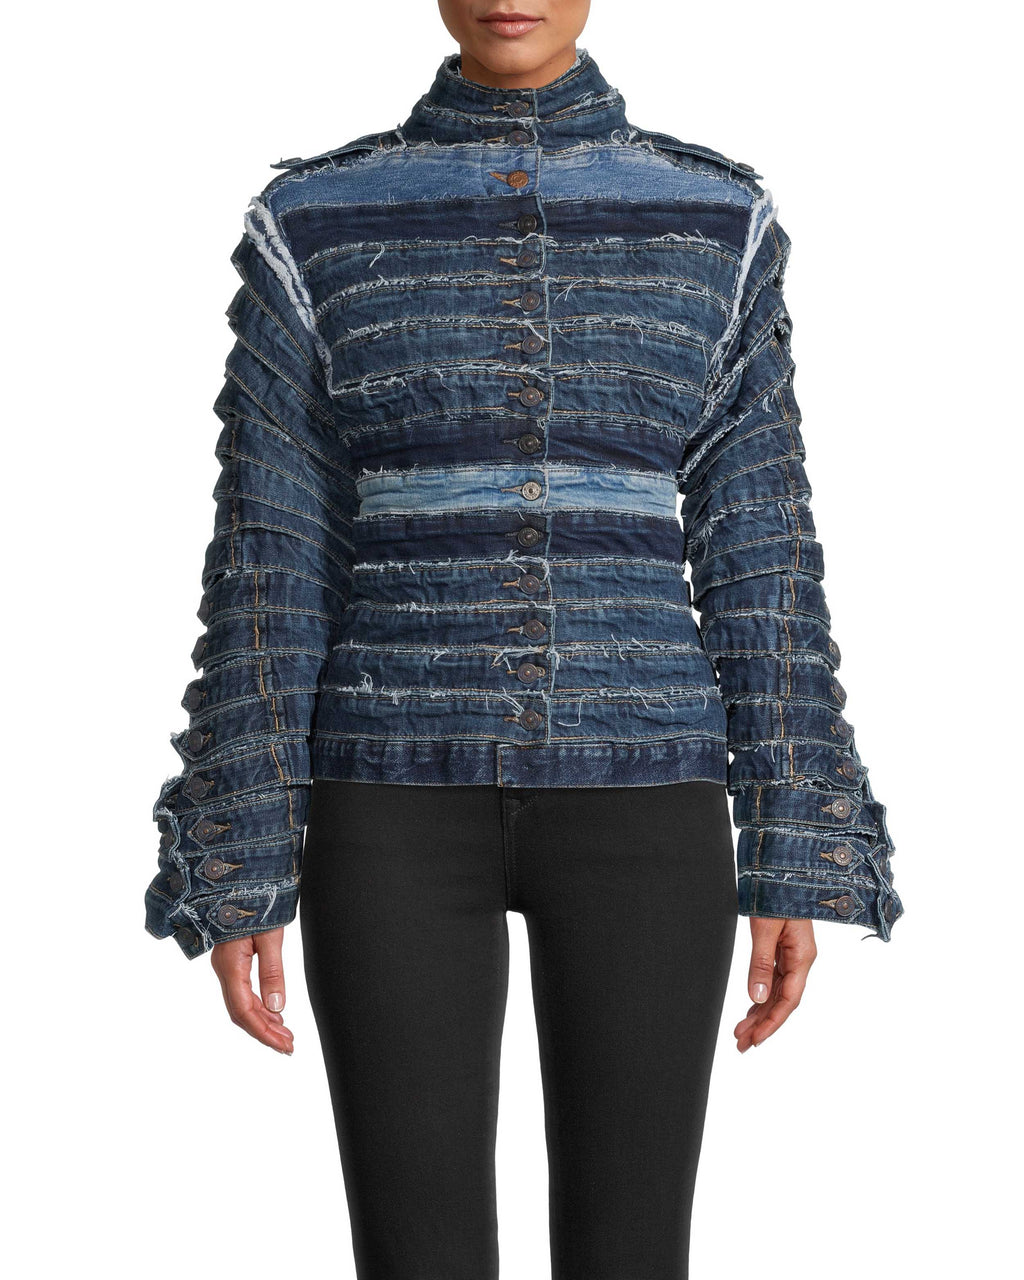 CJ18769 - RECYCLED DENIM WAIST BAND JACKET - outerwear - jackets - Our standout style from Resort has to be this denim jacket. Created from recycled denim waist bands, this truly one of a kind piece is hand made to order in our studio in NYC. This statement piece pairs perfect with white tees and cashmere sweaters alike. Please expect at least 2 weeks for shipment after placing your order.